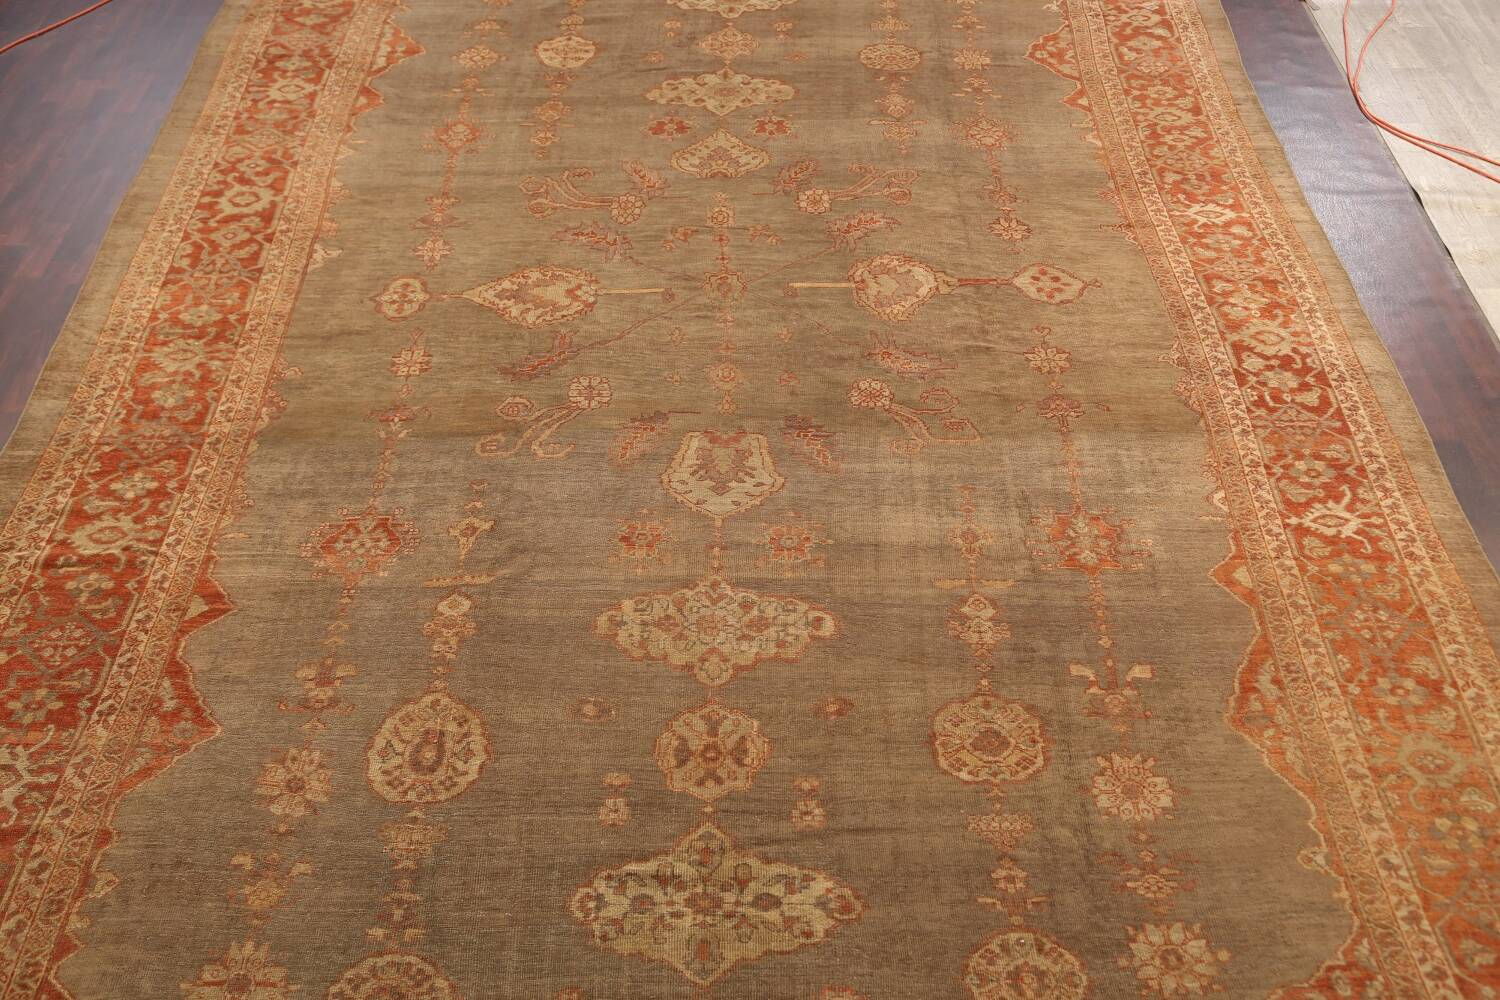 Pre-1900 Antique Sultanabad Persian Rug 13x20 image 3